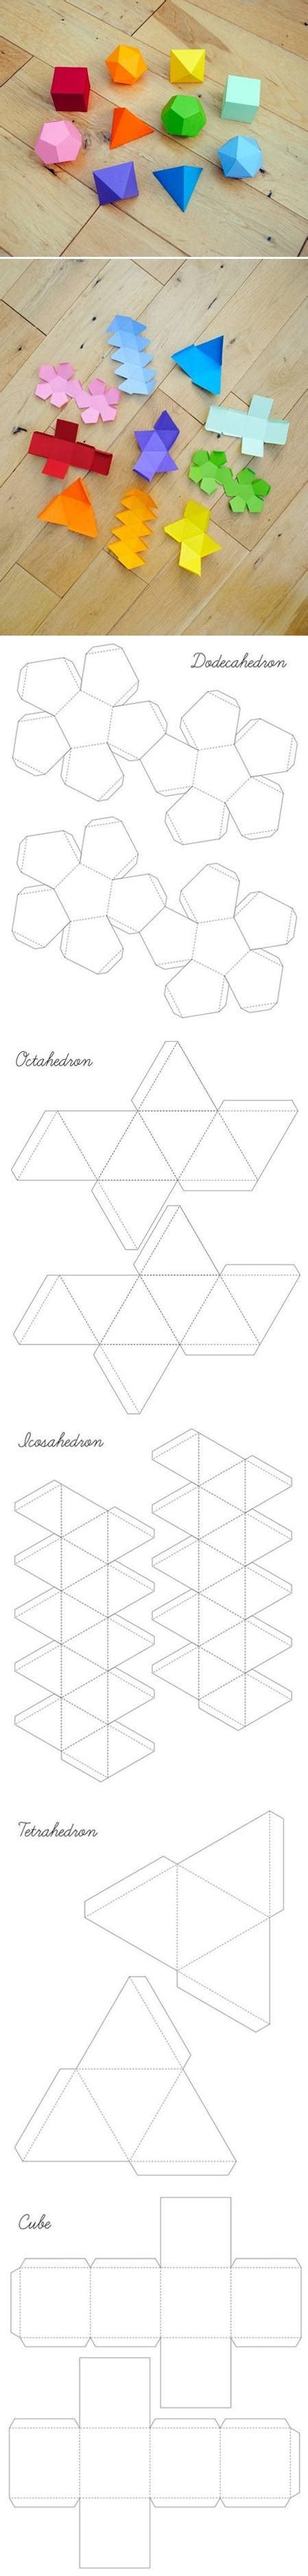 how to make geometrical box templates step by step diy